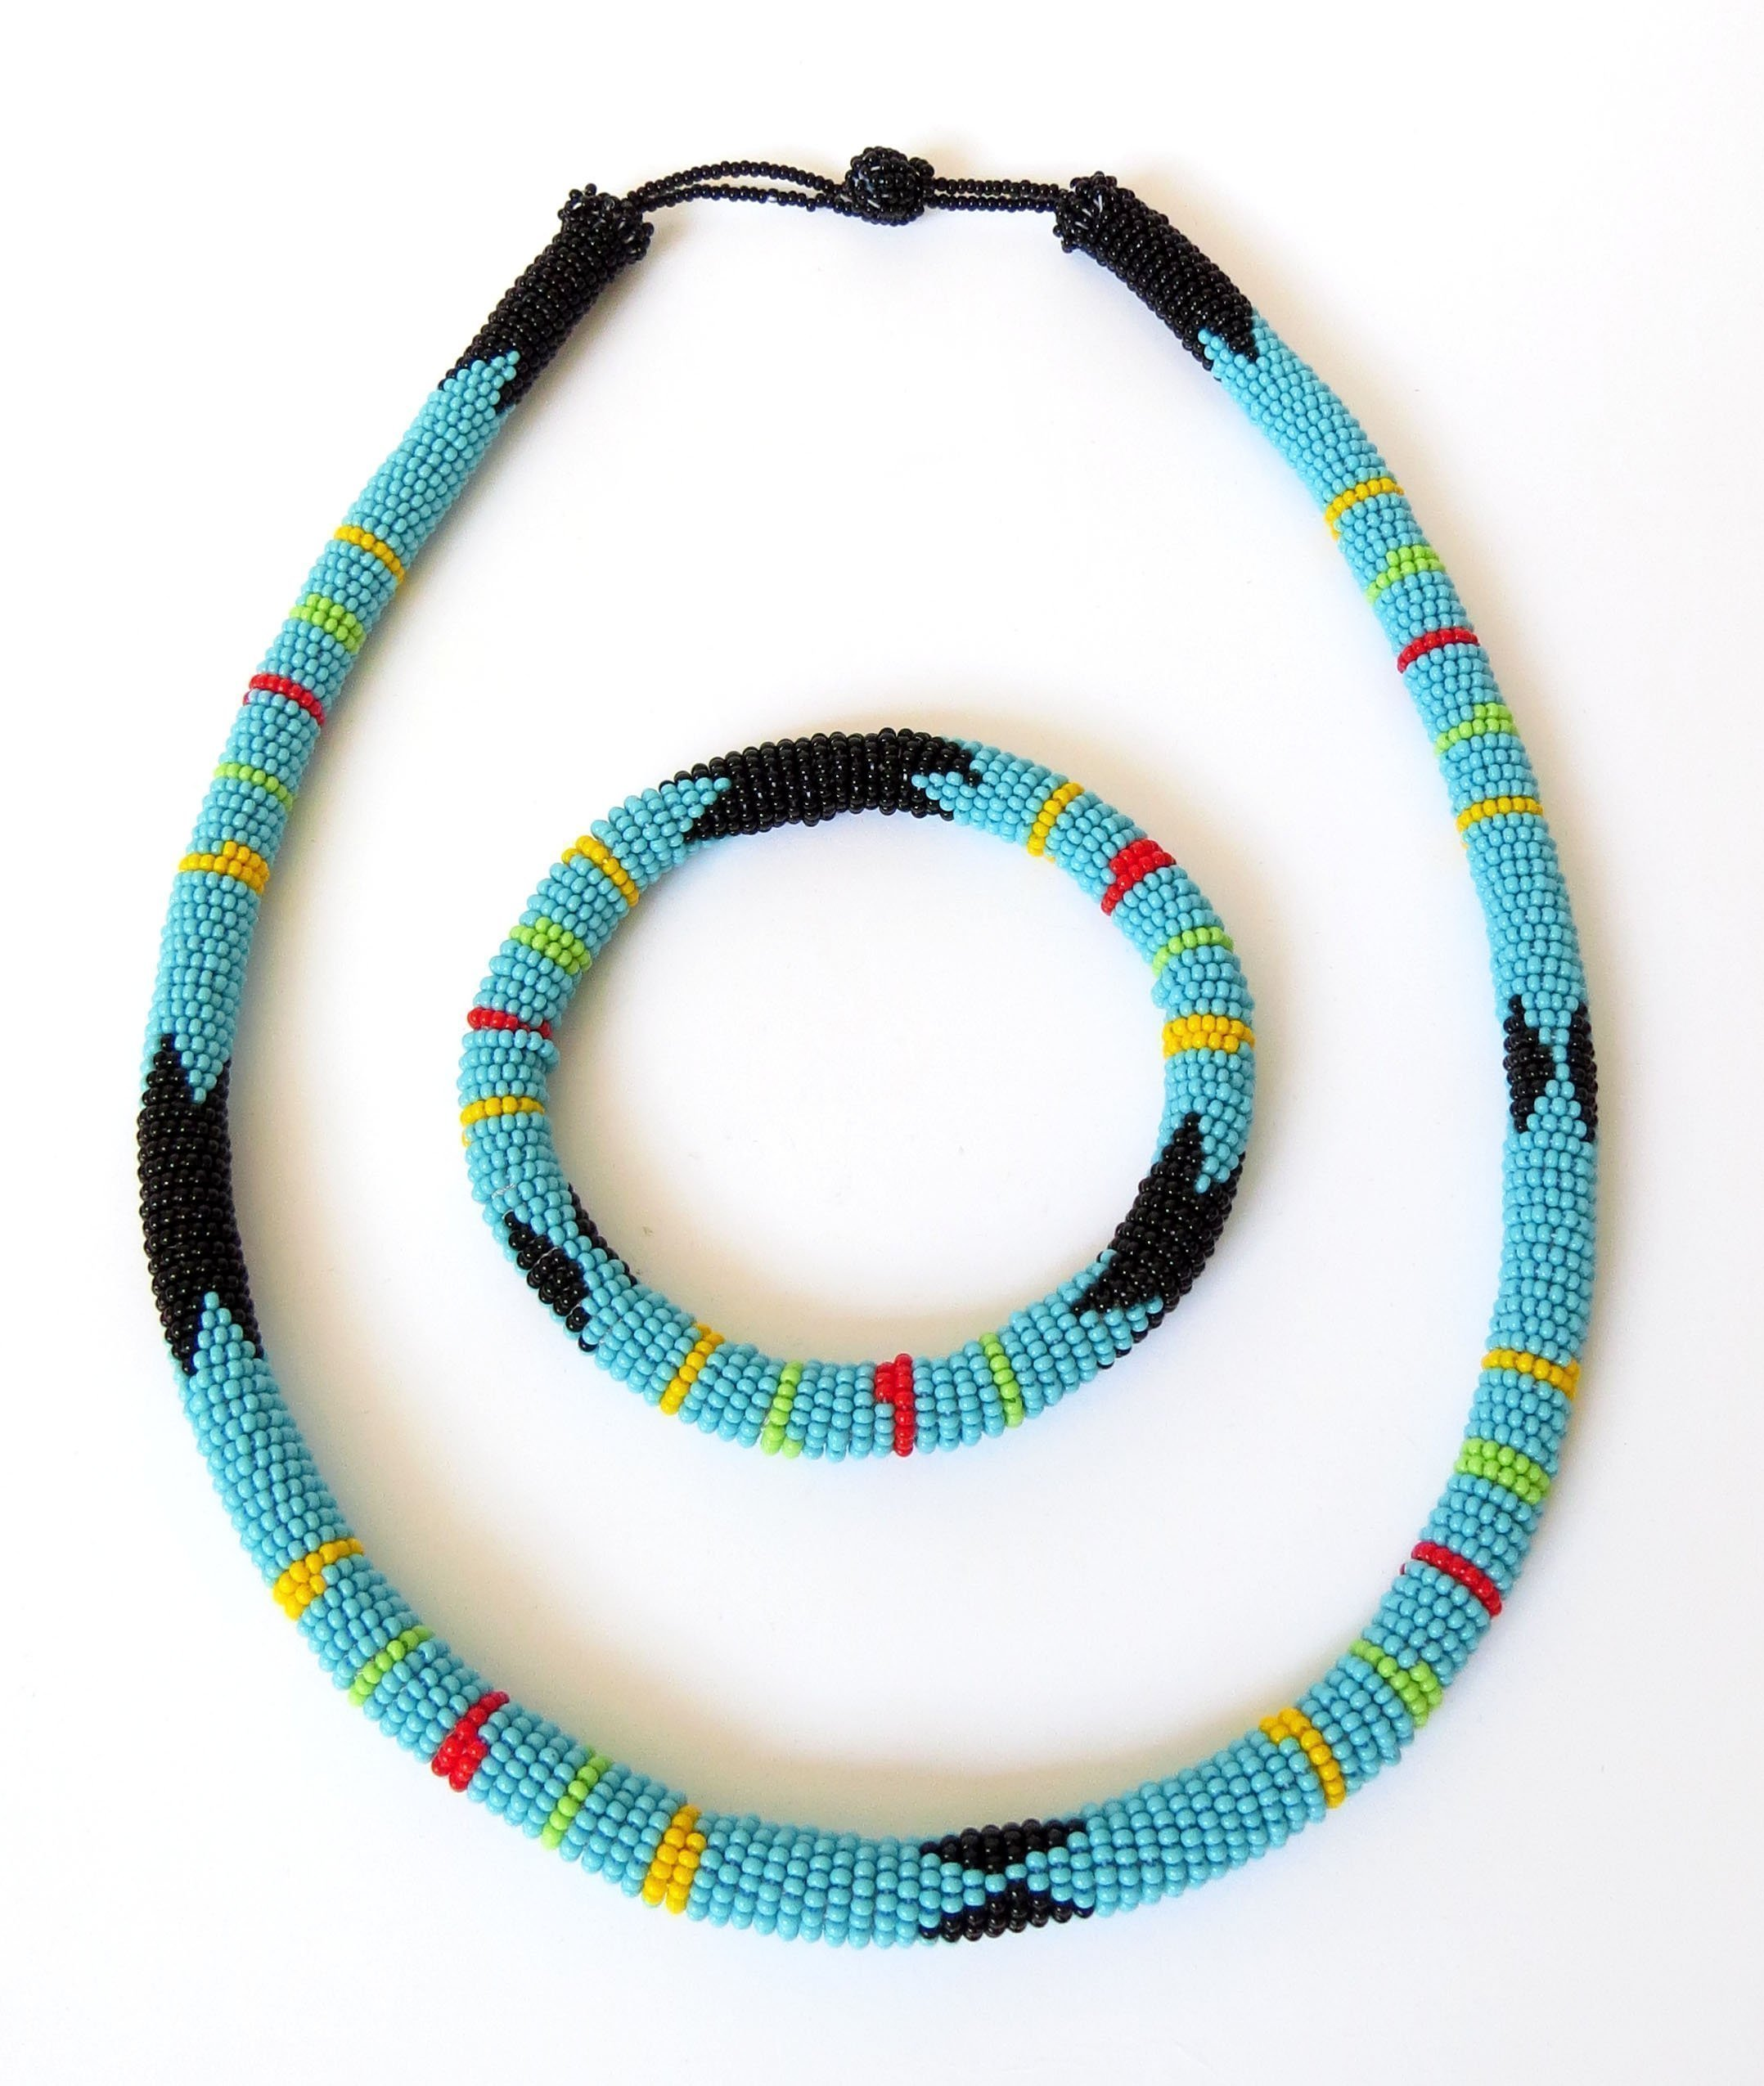 African Zulu beaded necklace and round bracelet set - Light Blue - Gift for her